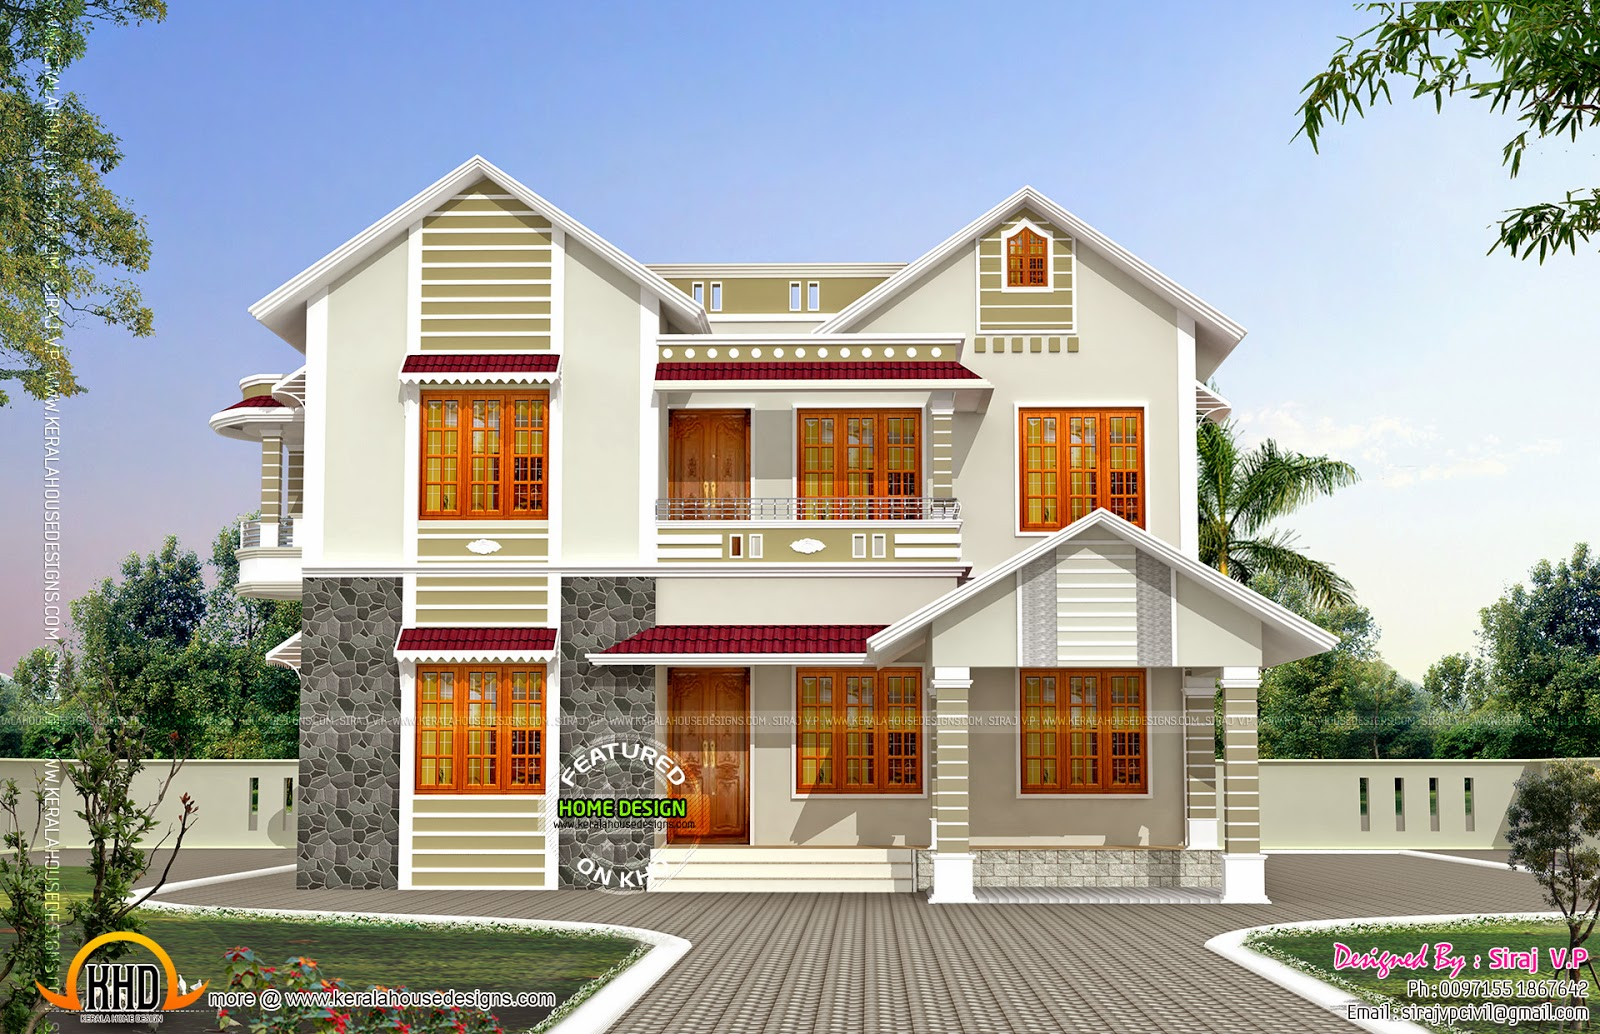 10 home design front view images modern house design for Home designs 12m frontage